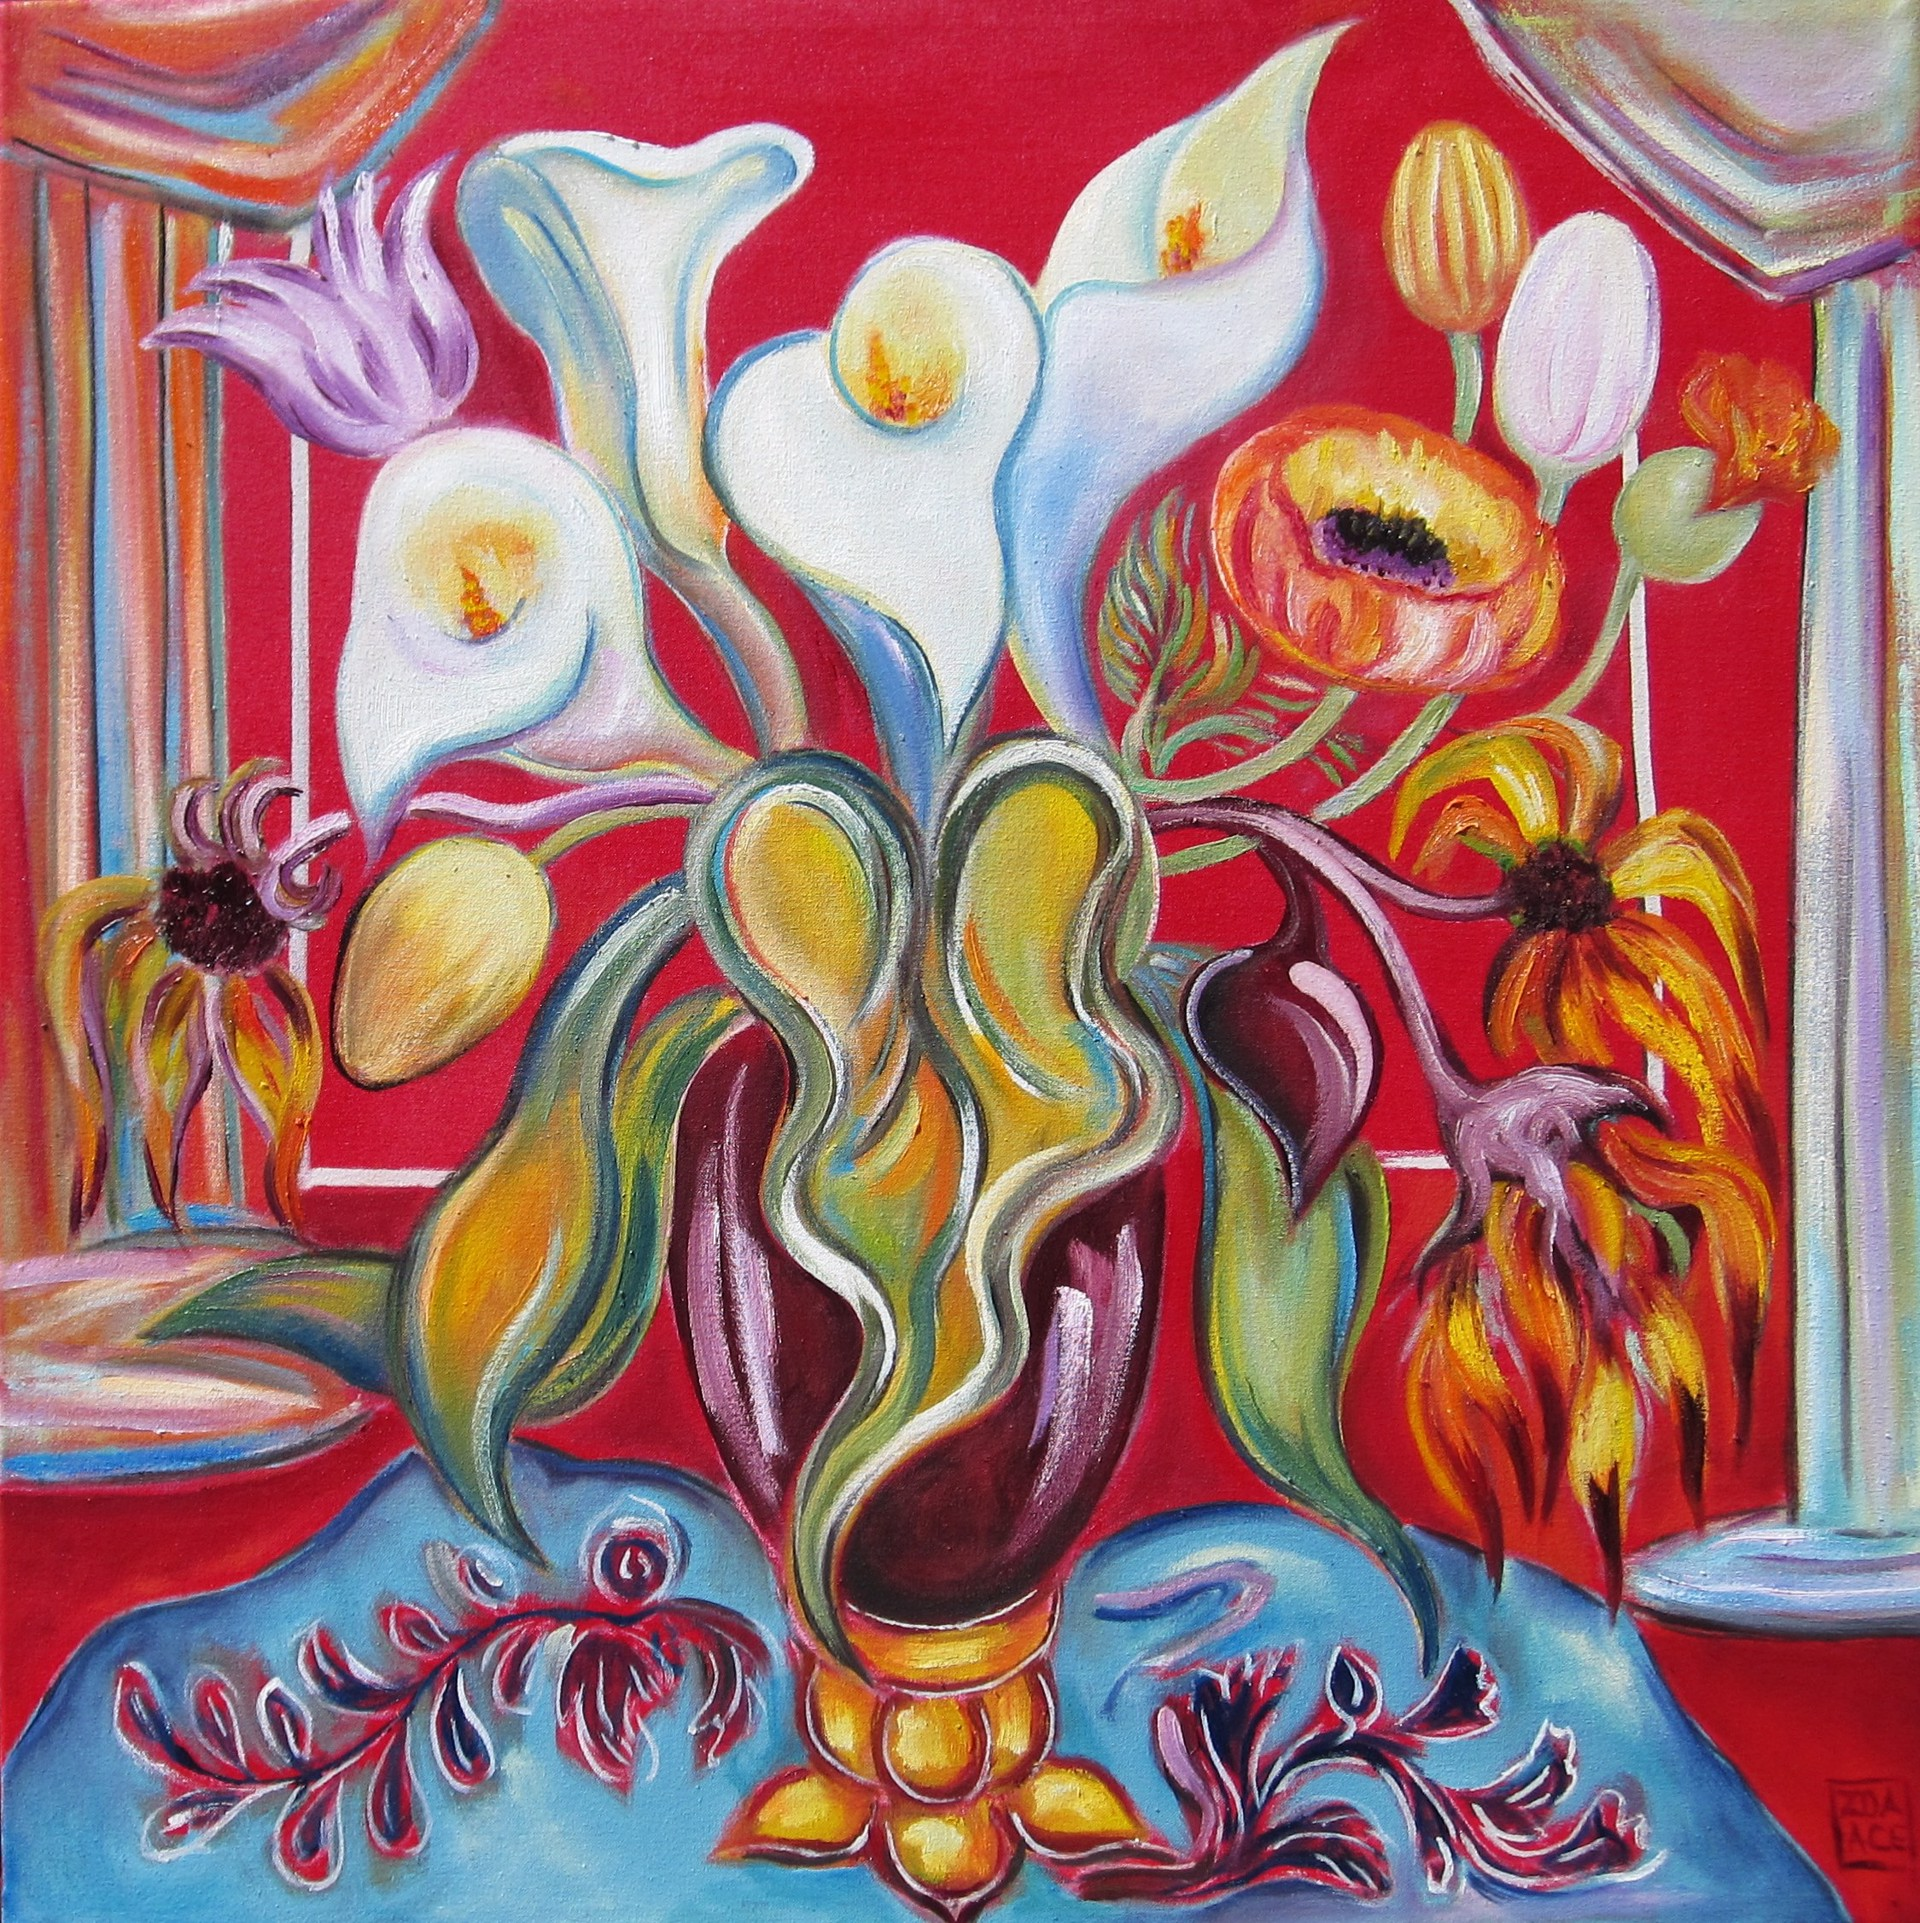 Still Life on Red by Zoa Ace